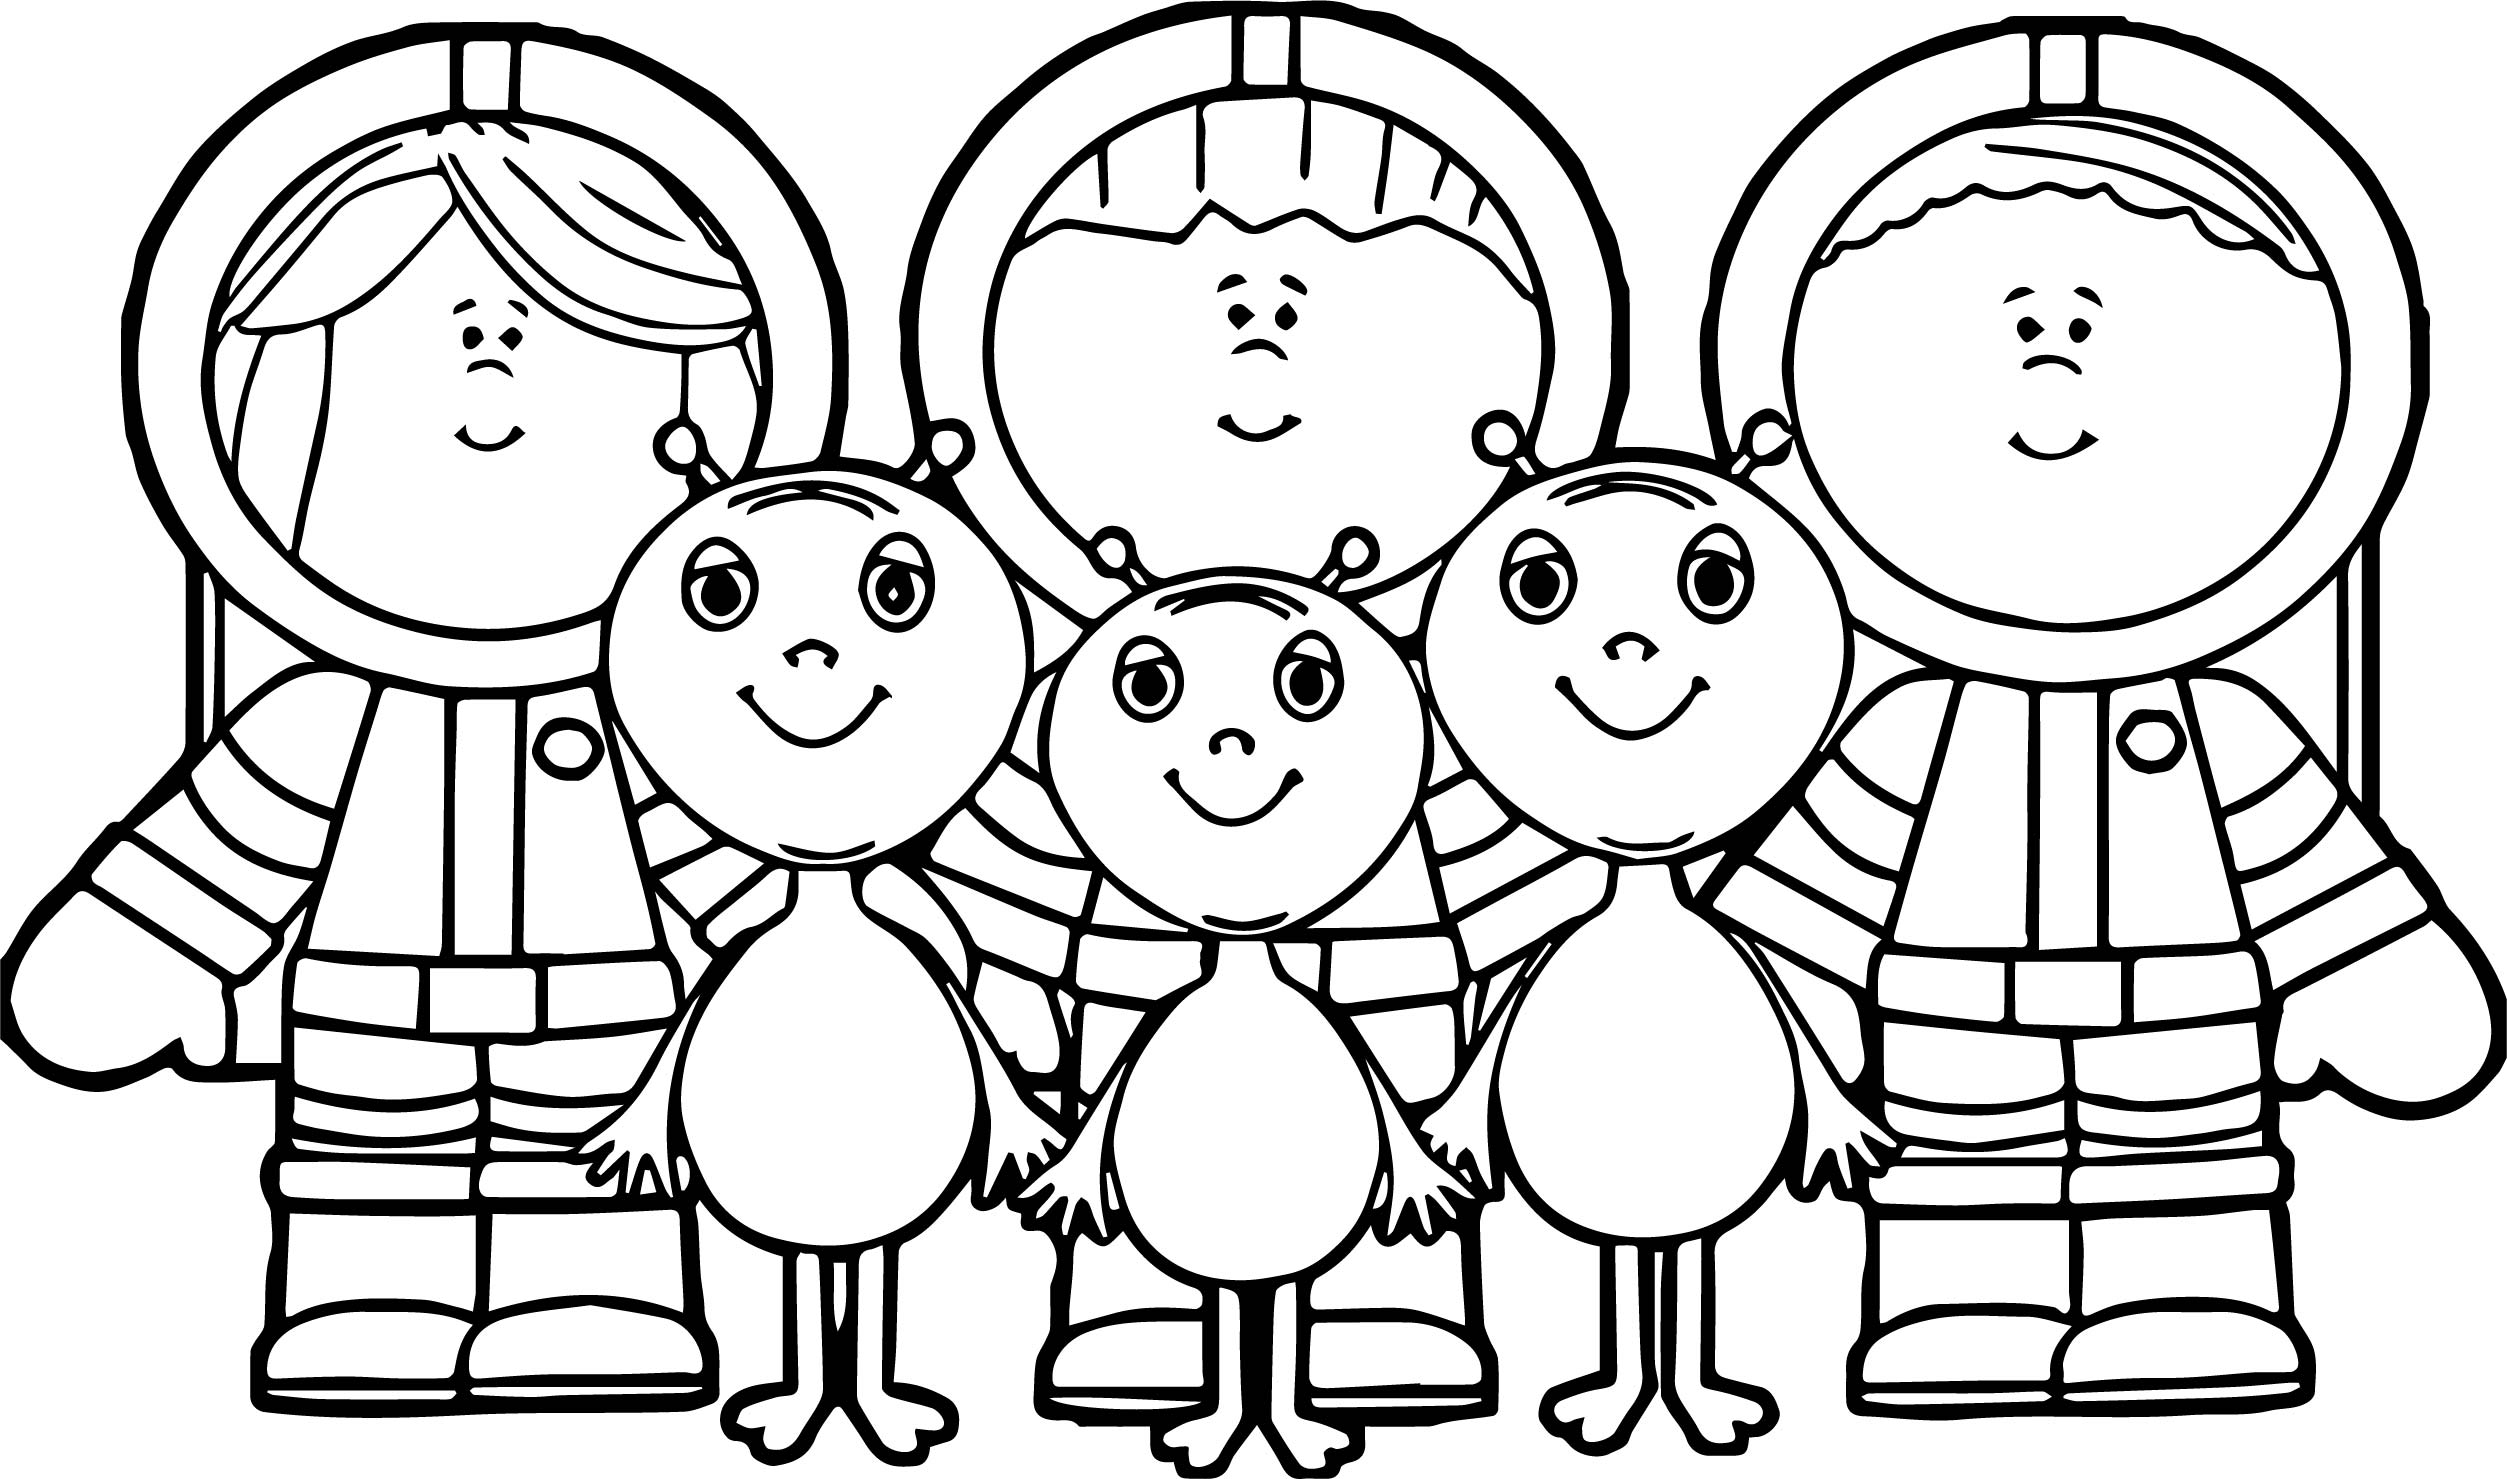 Astronaut Kids And Aliens Coloring Page